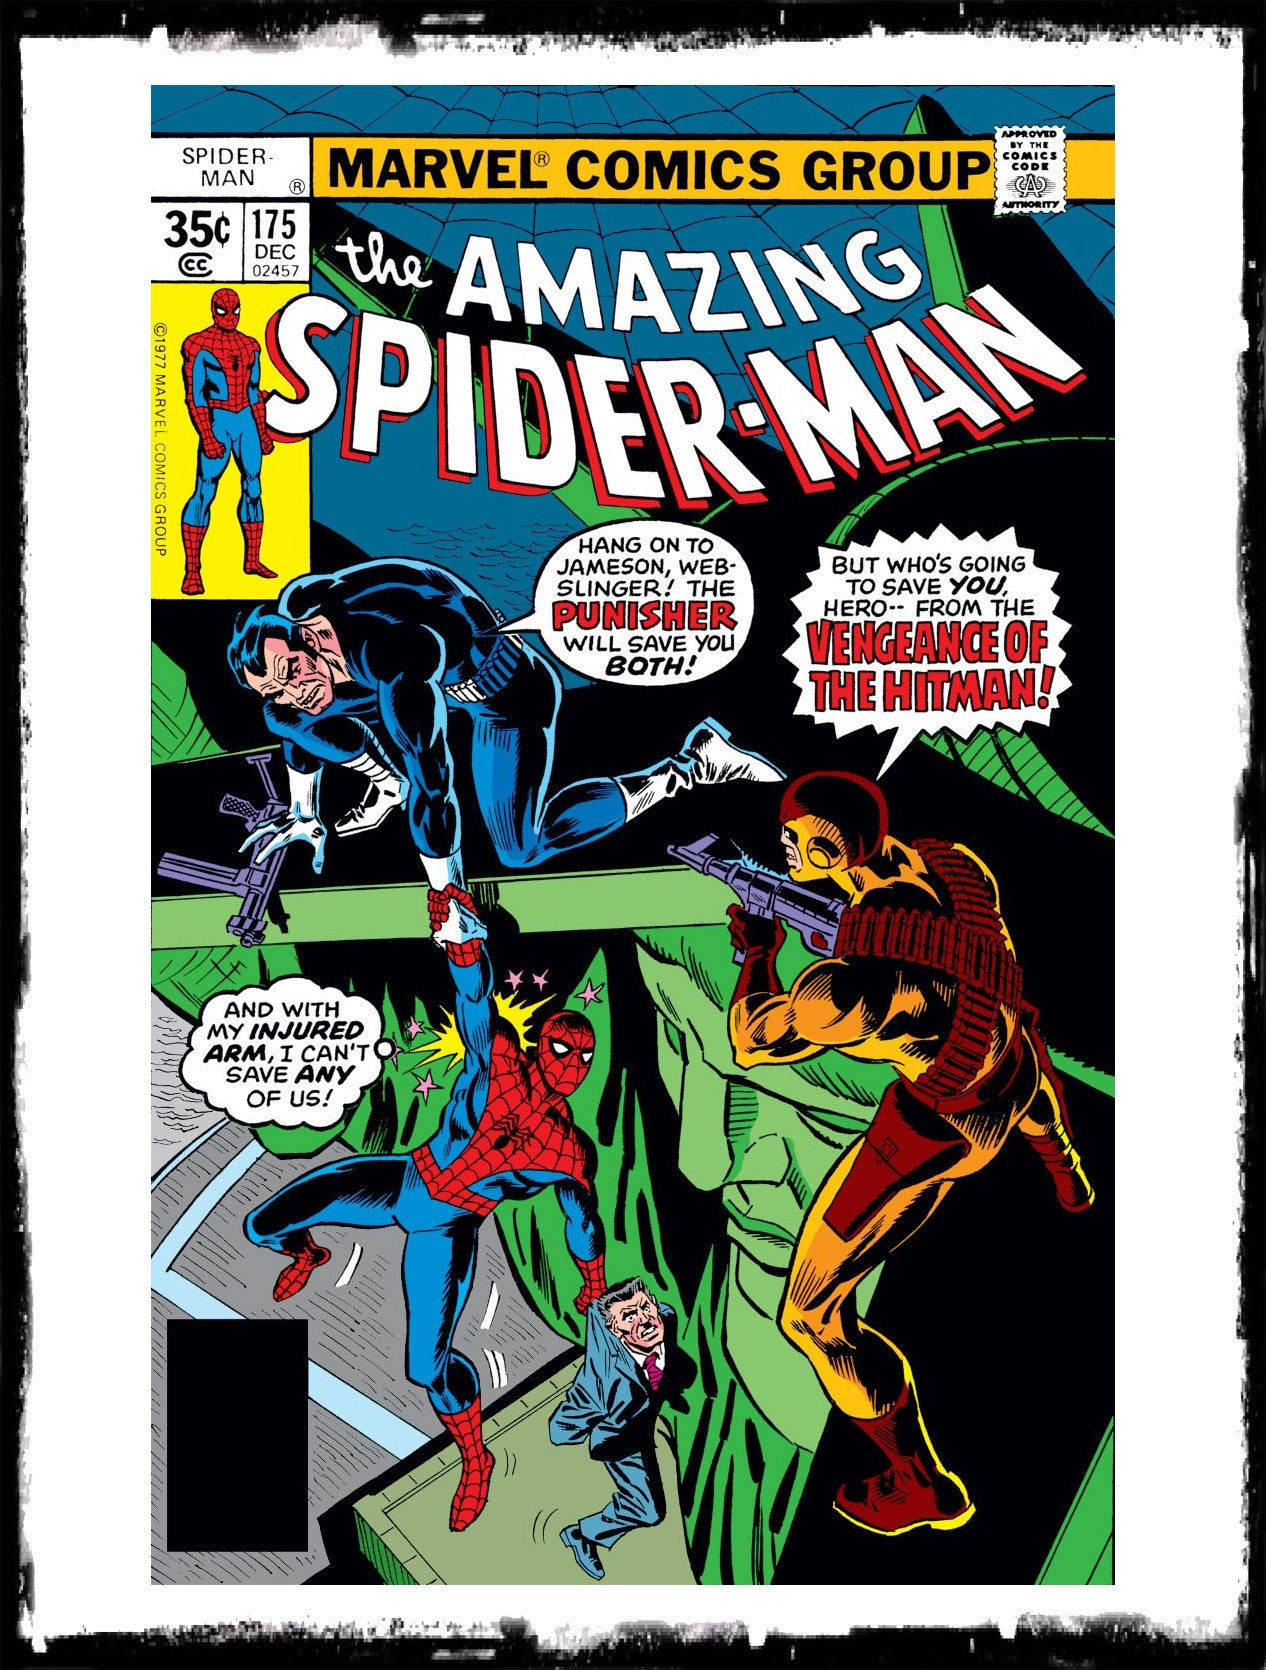 AMAZING SPIDER-MAN - #175 EARLY PUNISHER APPEARANCE / NEWSSTAND (1977 - VF)